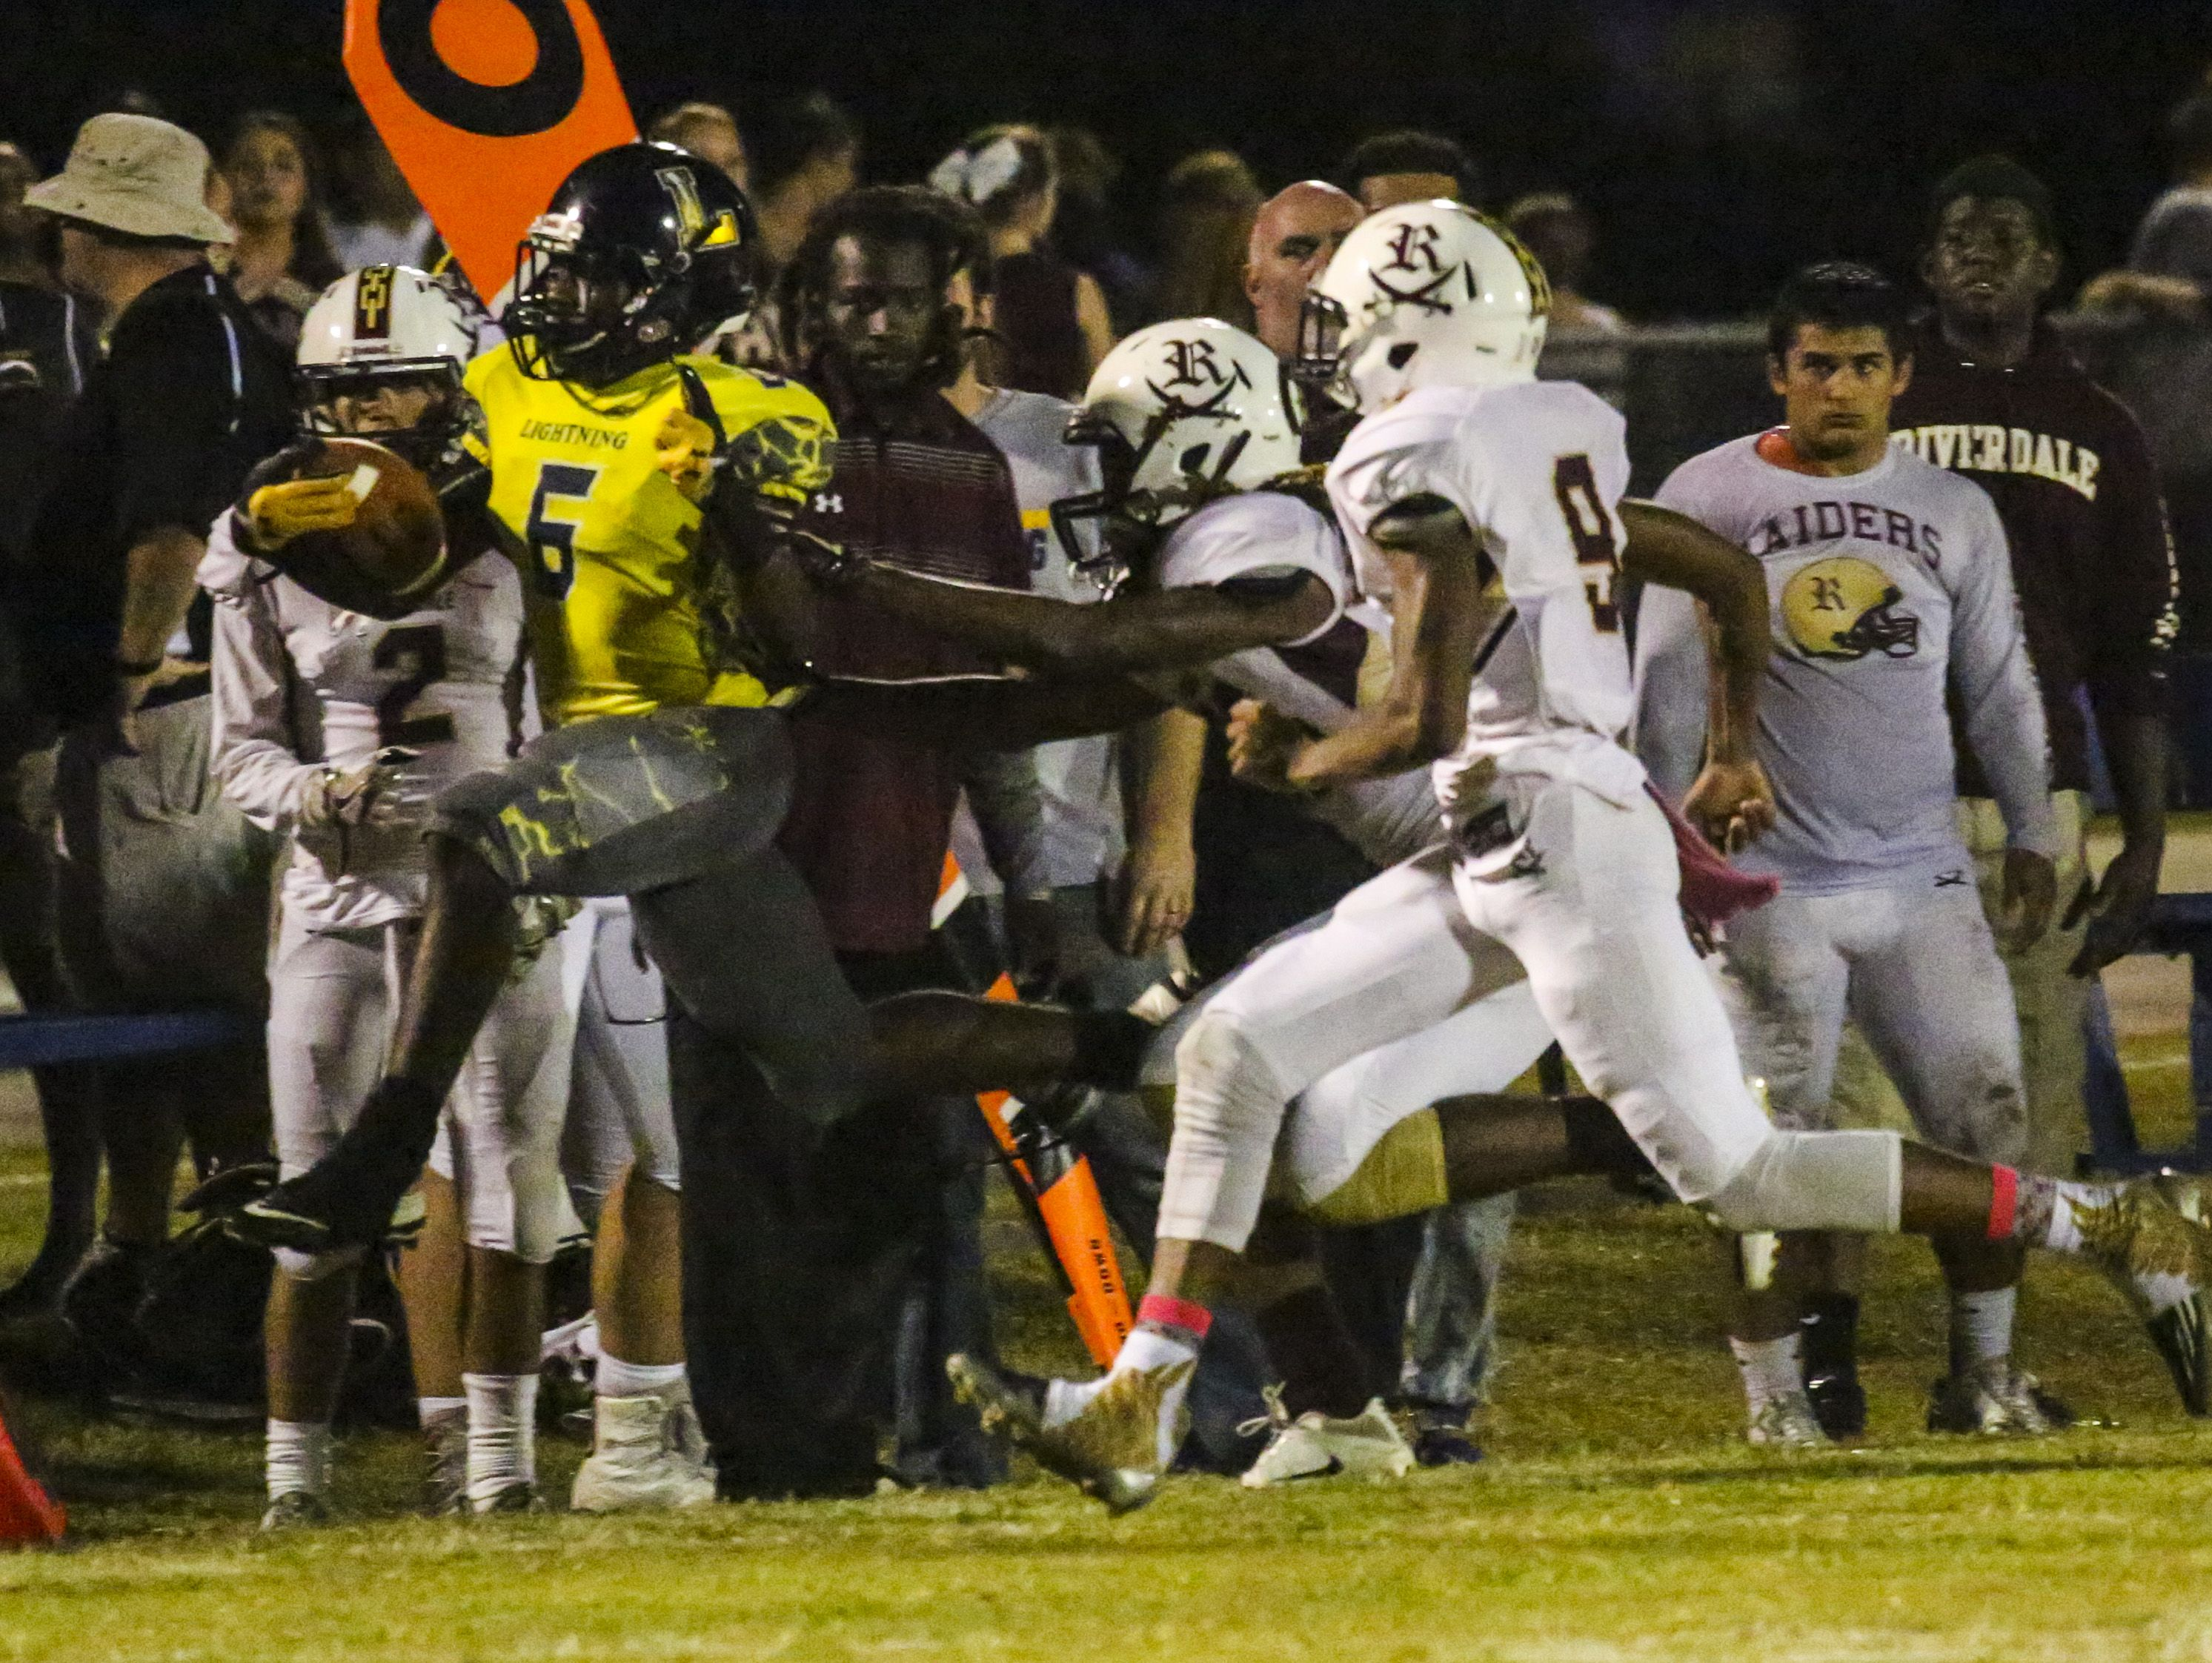 Lehigh's Jalane Nelson is pushed out of bounds as he gains yards for the Lightning during the Riverdale at Lehigh football game.